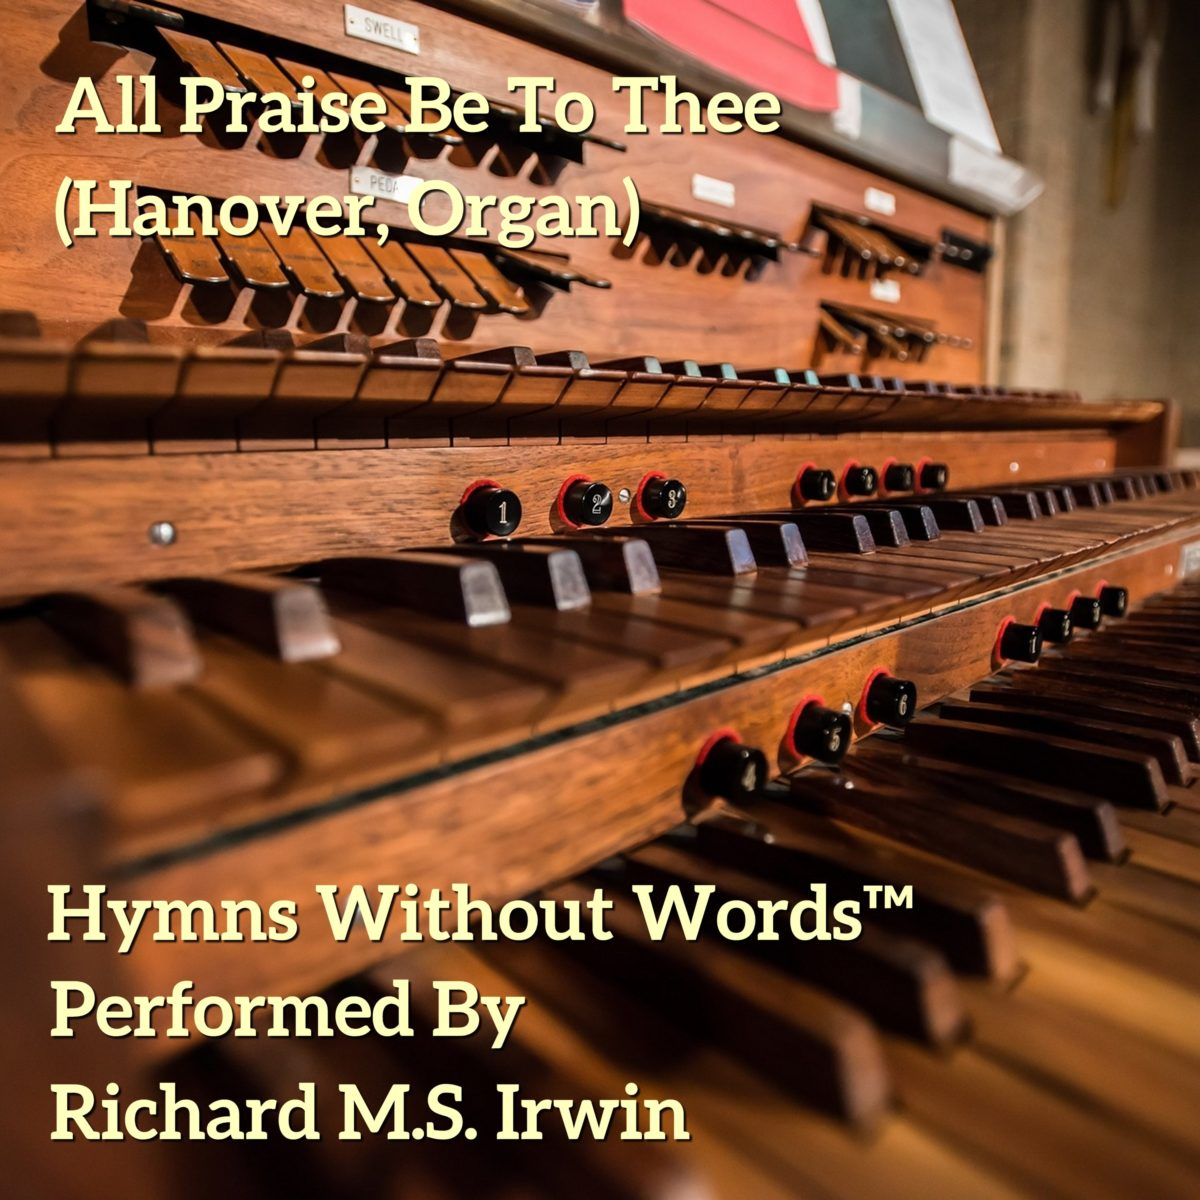 All Praise Be To Thee My Saviour And King (Hanover, Organ, 3 Verses)